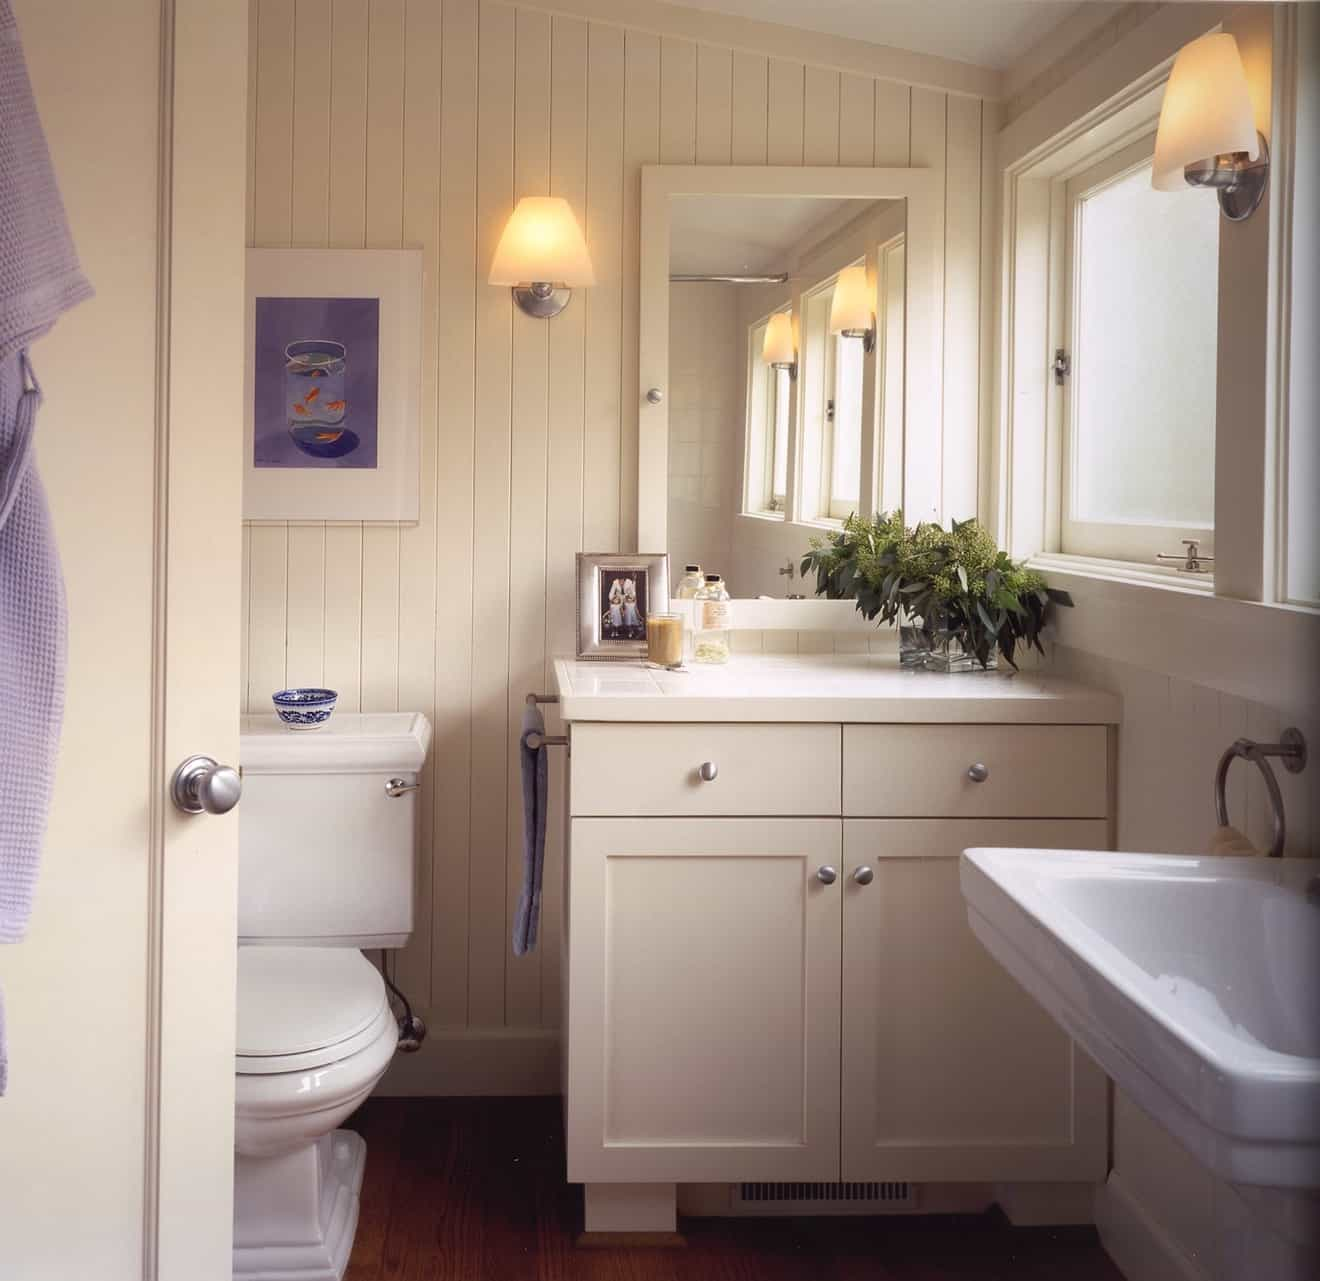 Featured Image of Chic Cottage Bathroom With Beadboard Walls